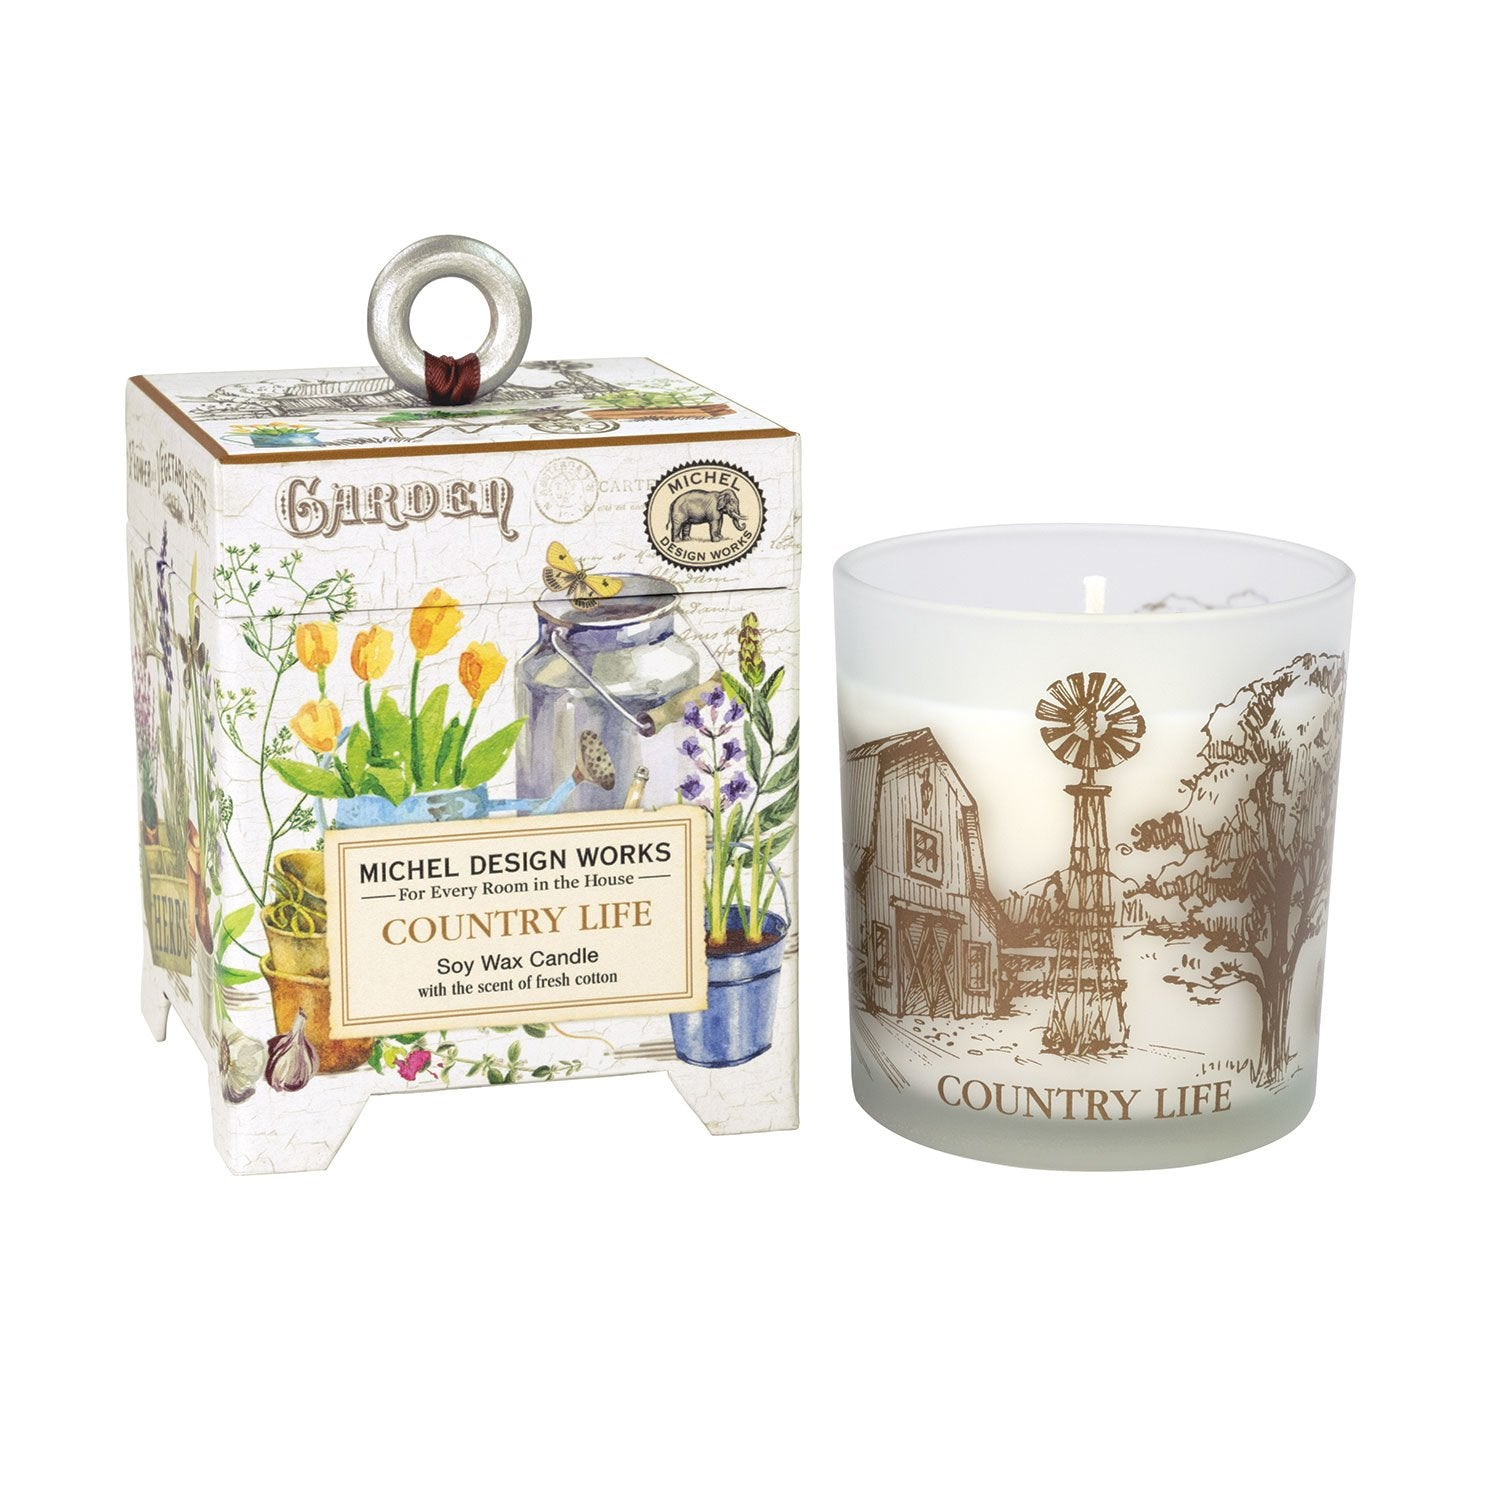 Country Life 6.5 oz. Soy Wax Candle